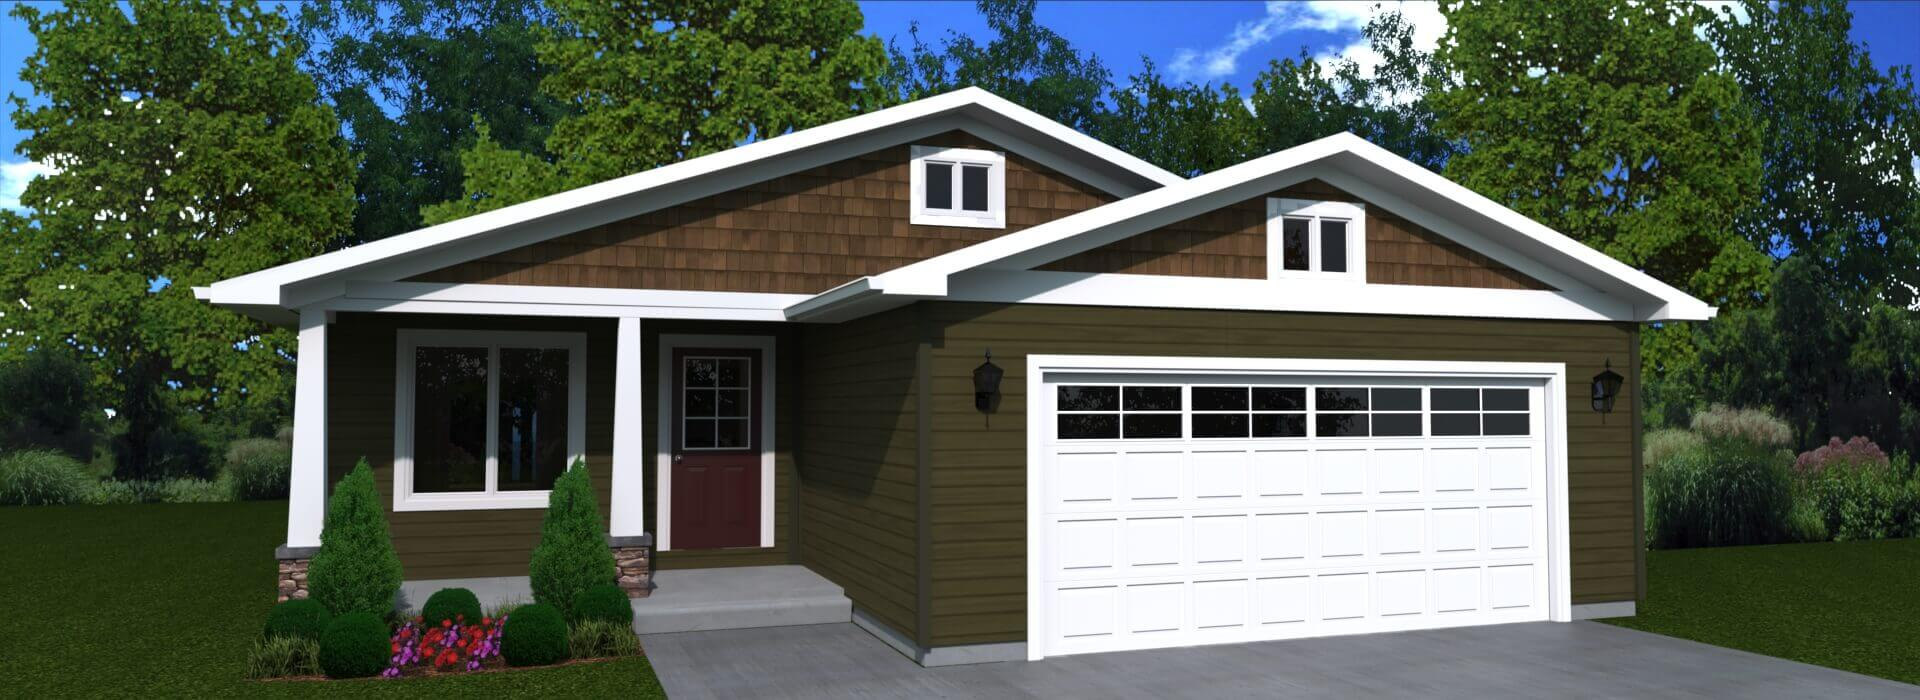 1309 sq.ft. timber mart house 3 bed 2 bath exterior render